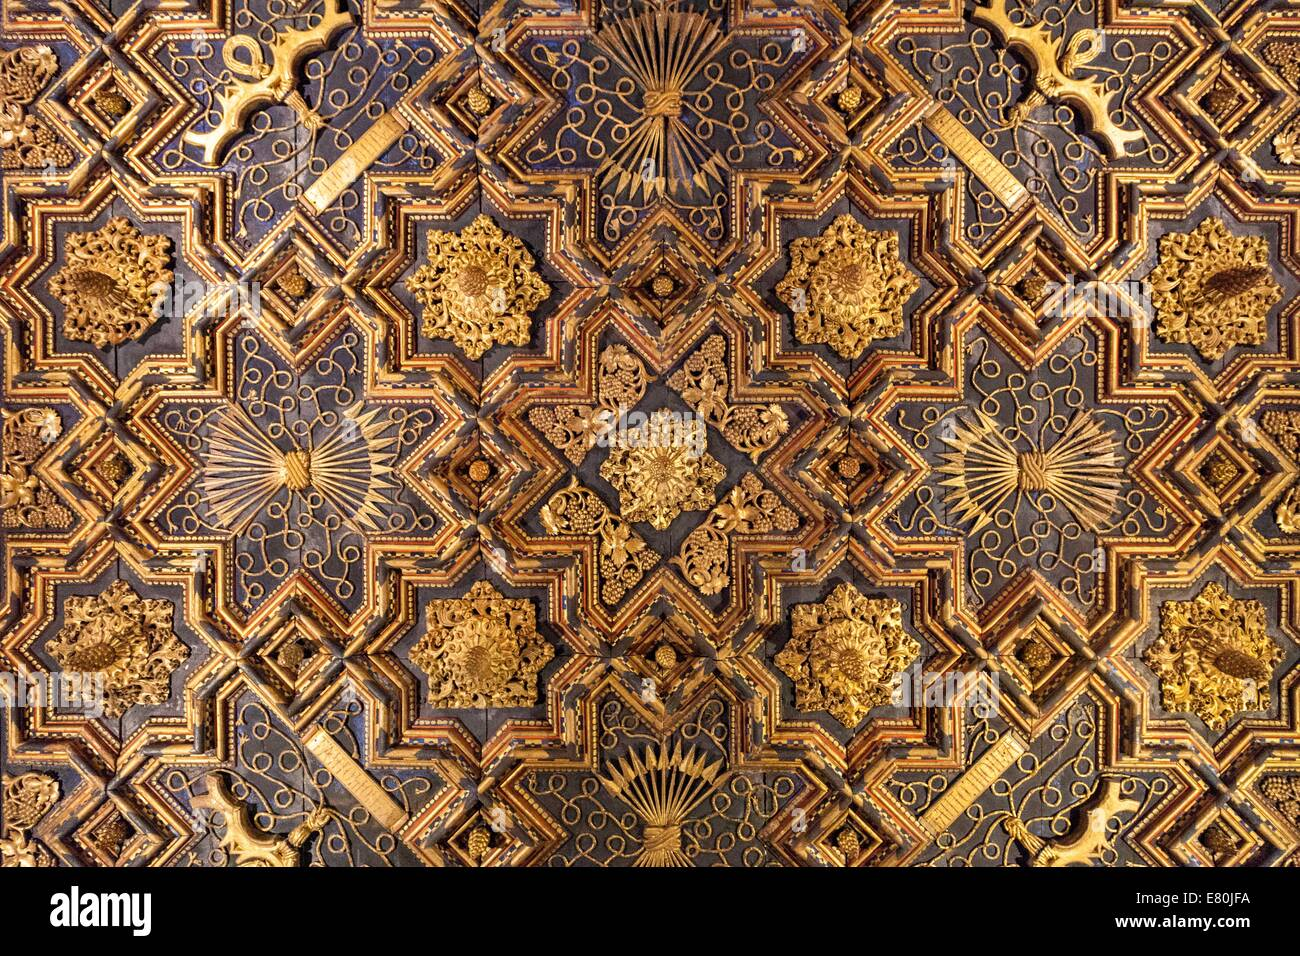 Elaborate decorative geometric pattern in the ceiling tiles of the Aljaferia Palace, Zaragoza Spain - Stock Image